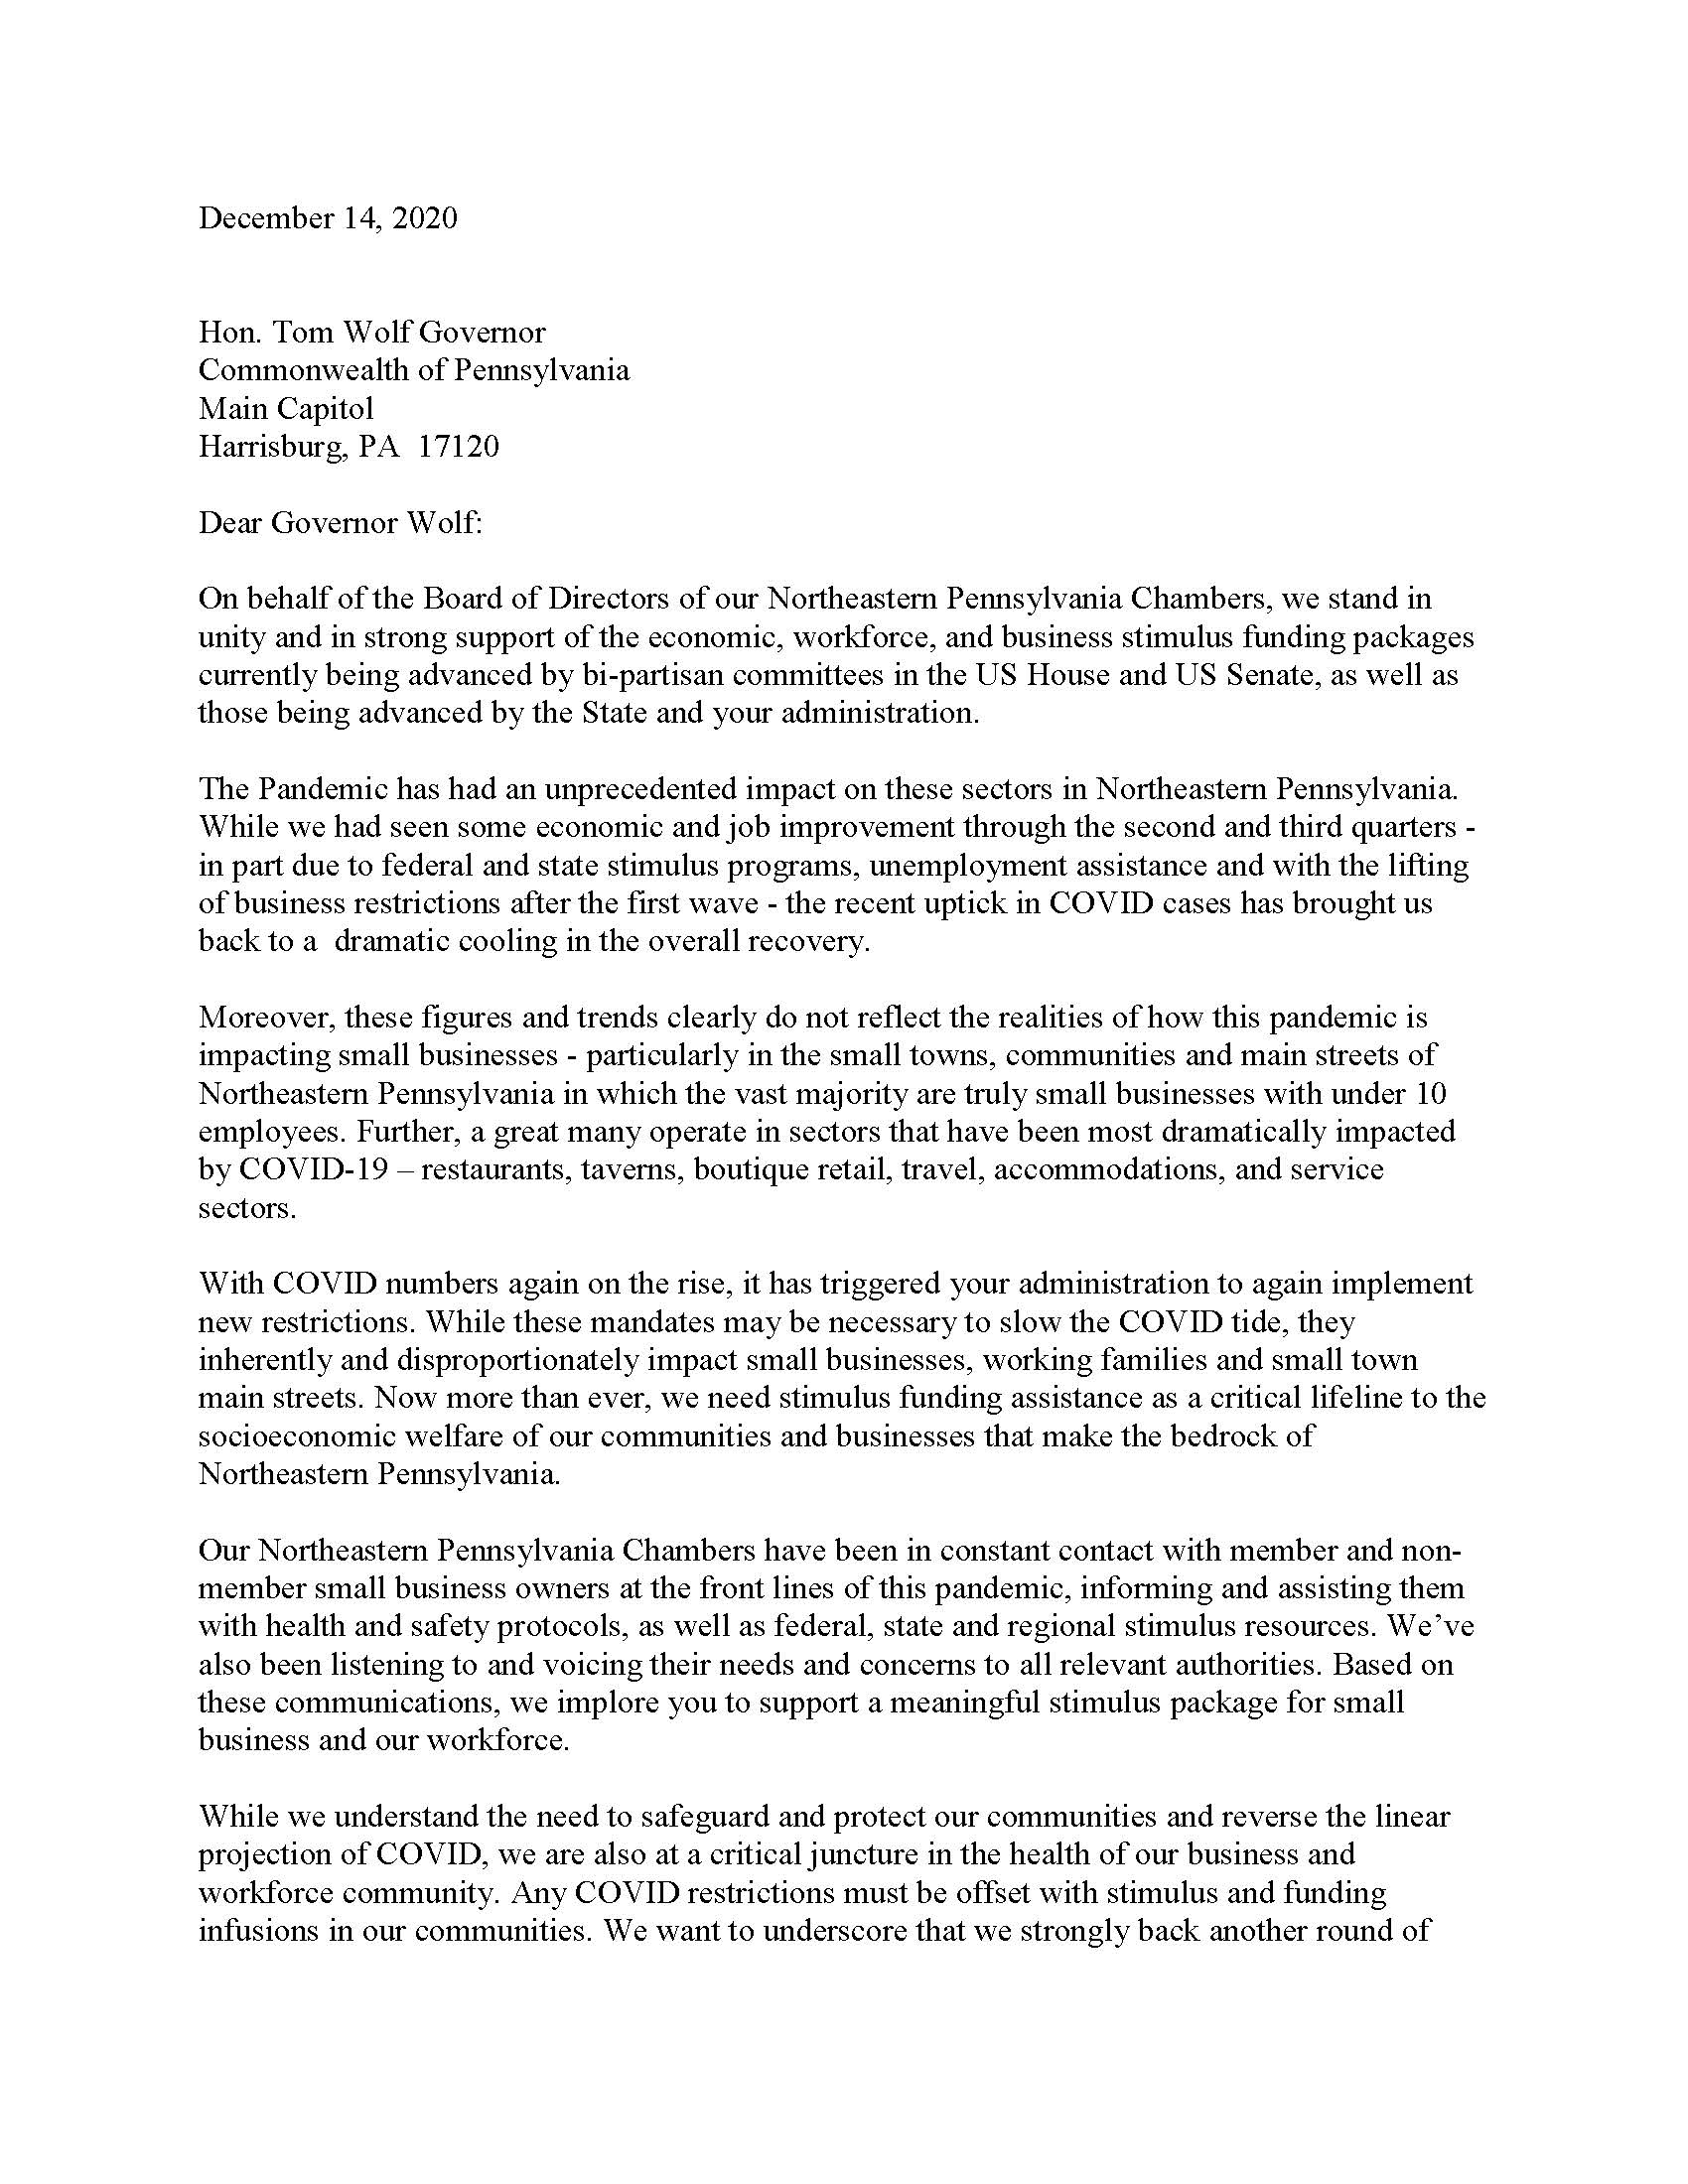 Government Affairs Letter